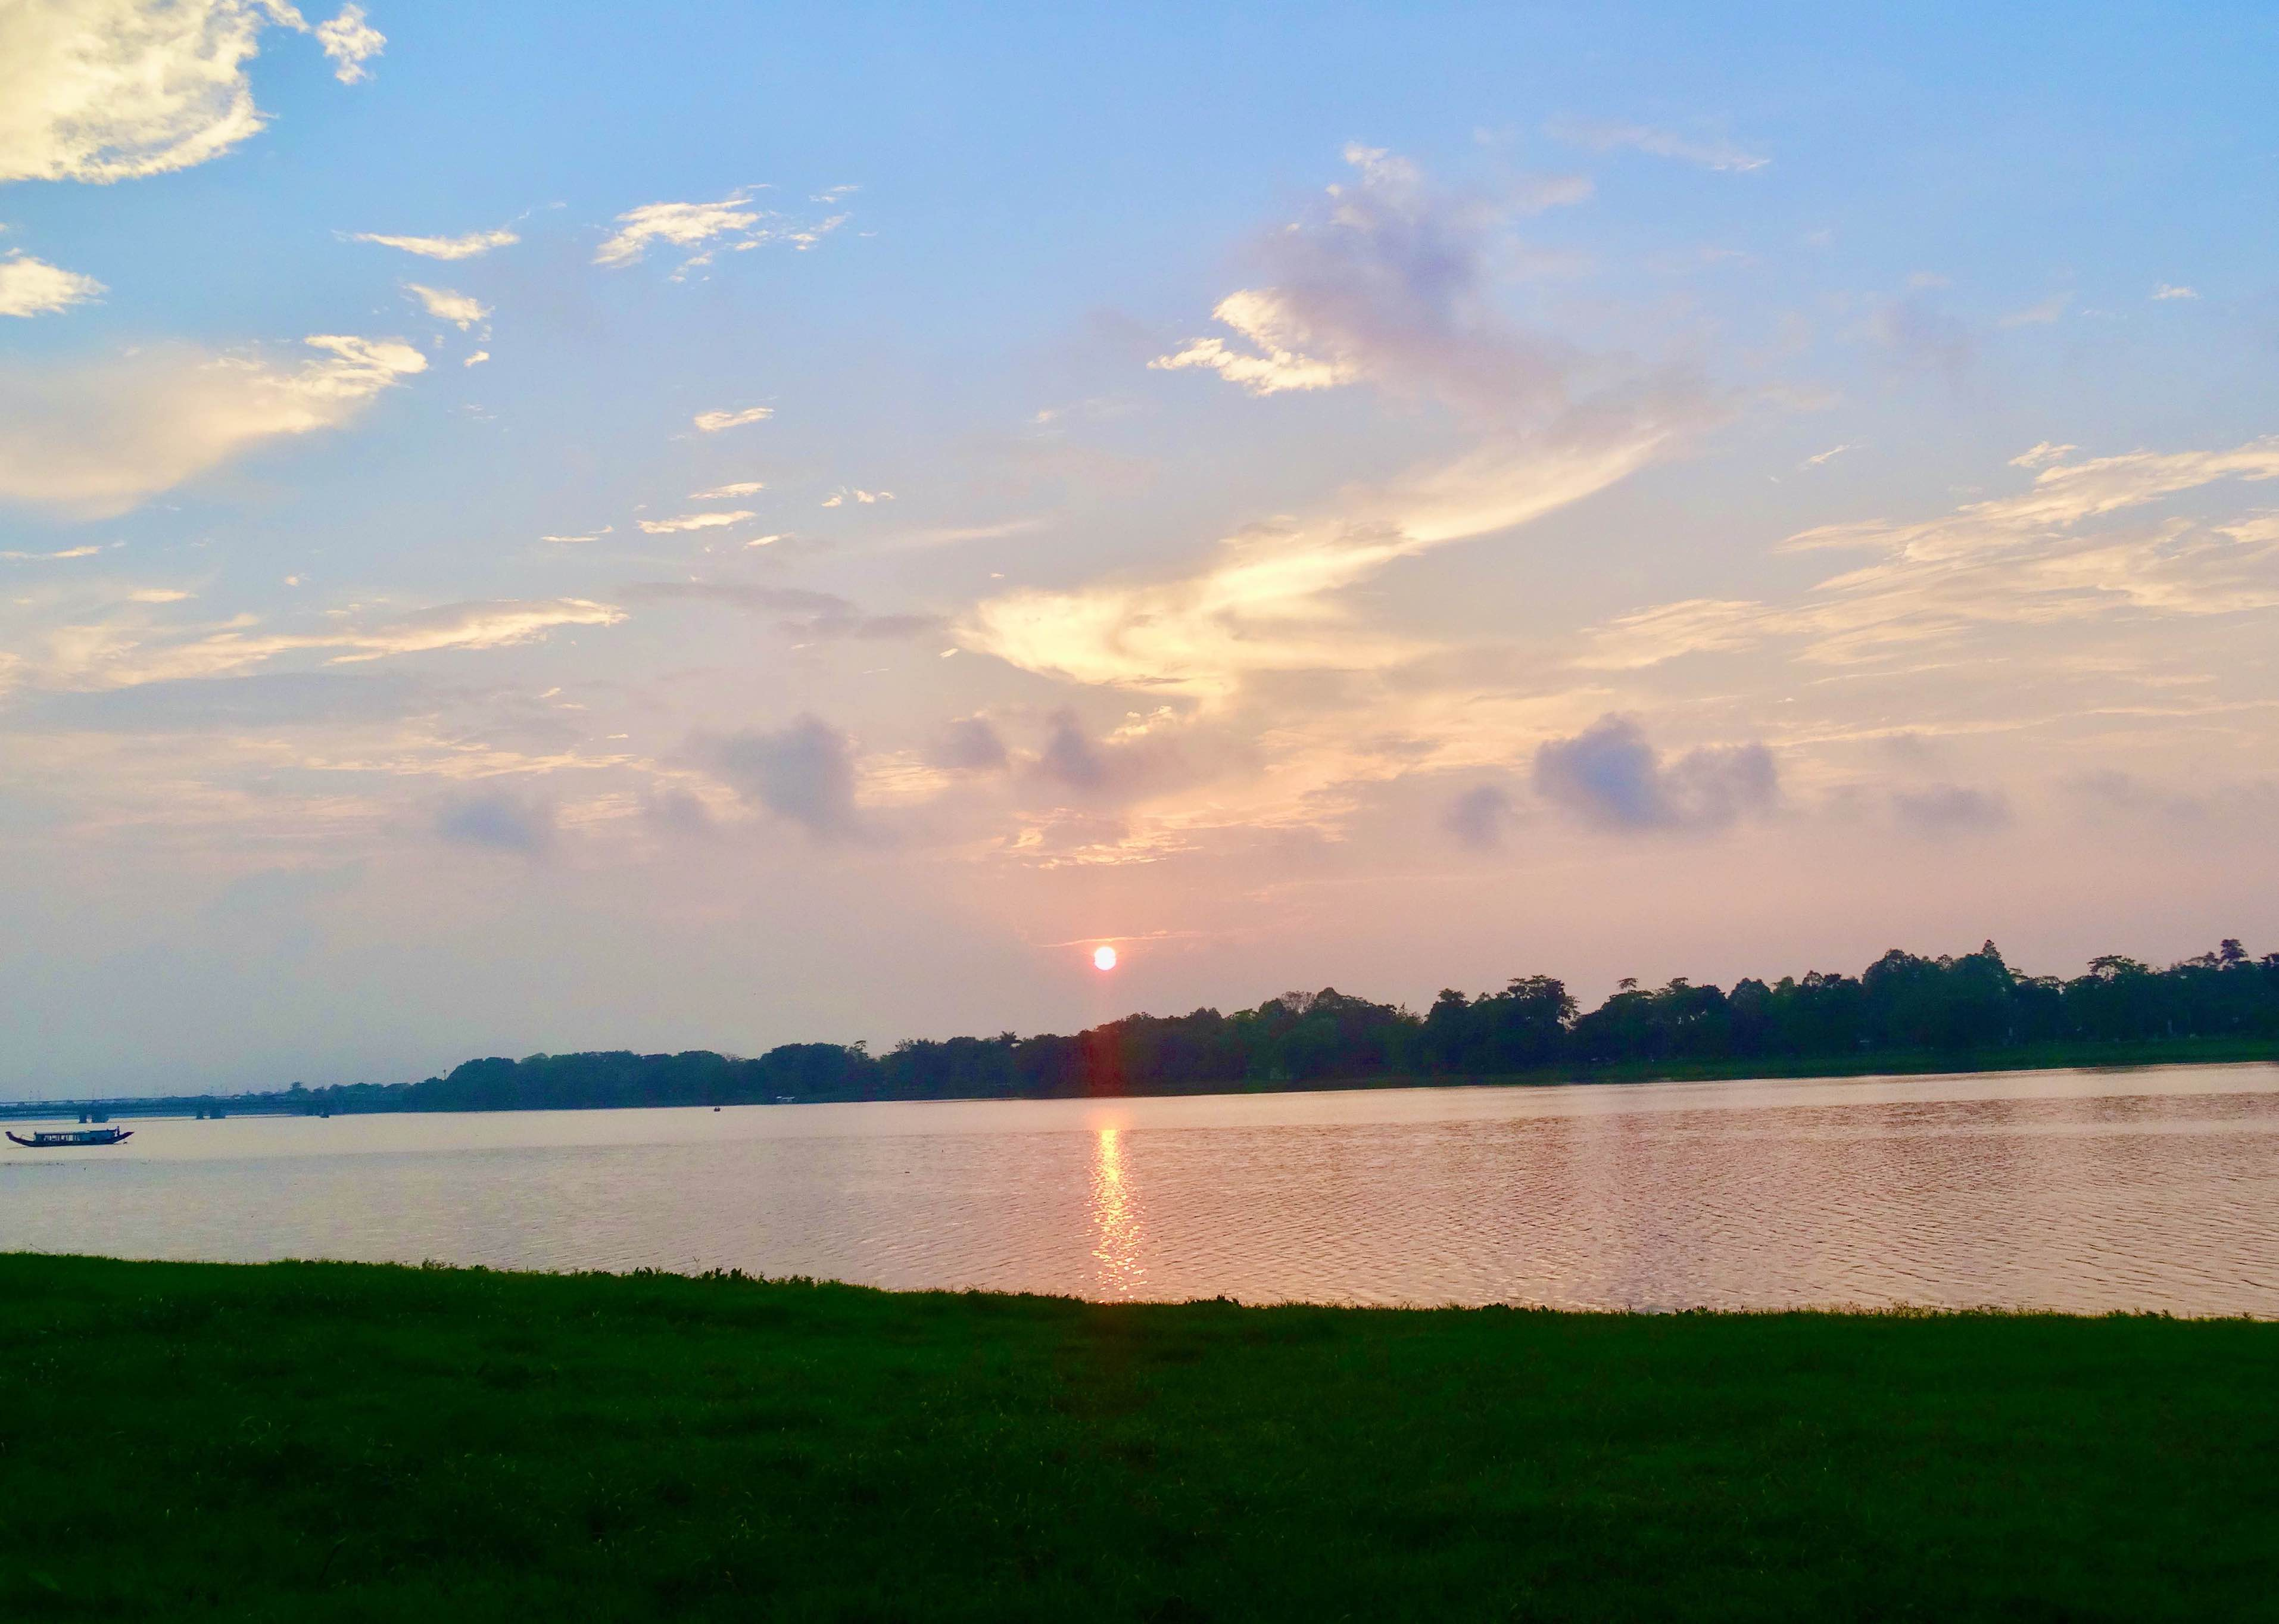 Sunset over The Perfume River.